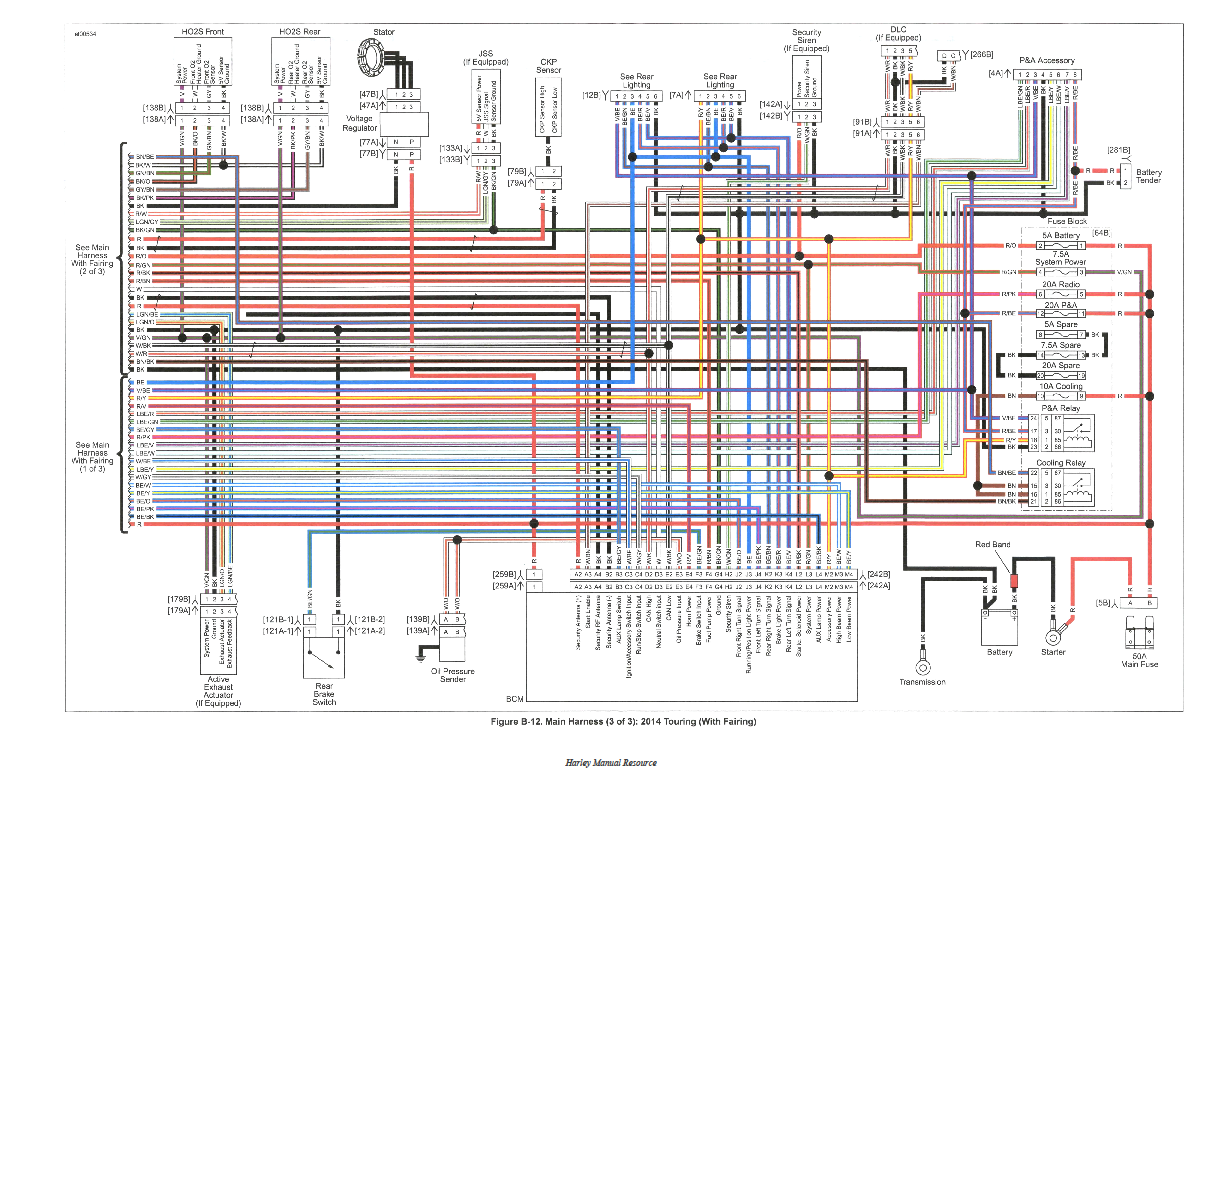 Flh Dash Wiring Diagram - Wiring Diagram Save Harley Xlh Voltage Regulator Wiring Diagram on